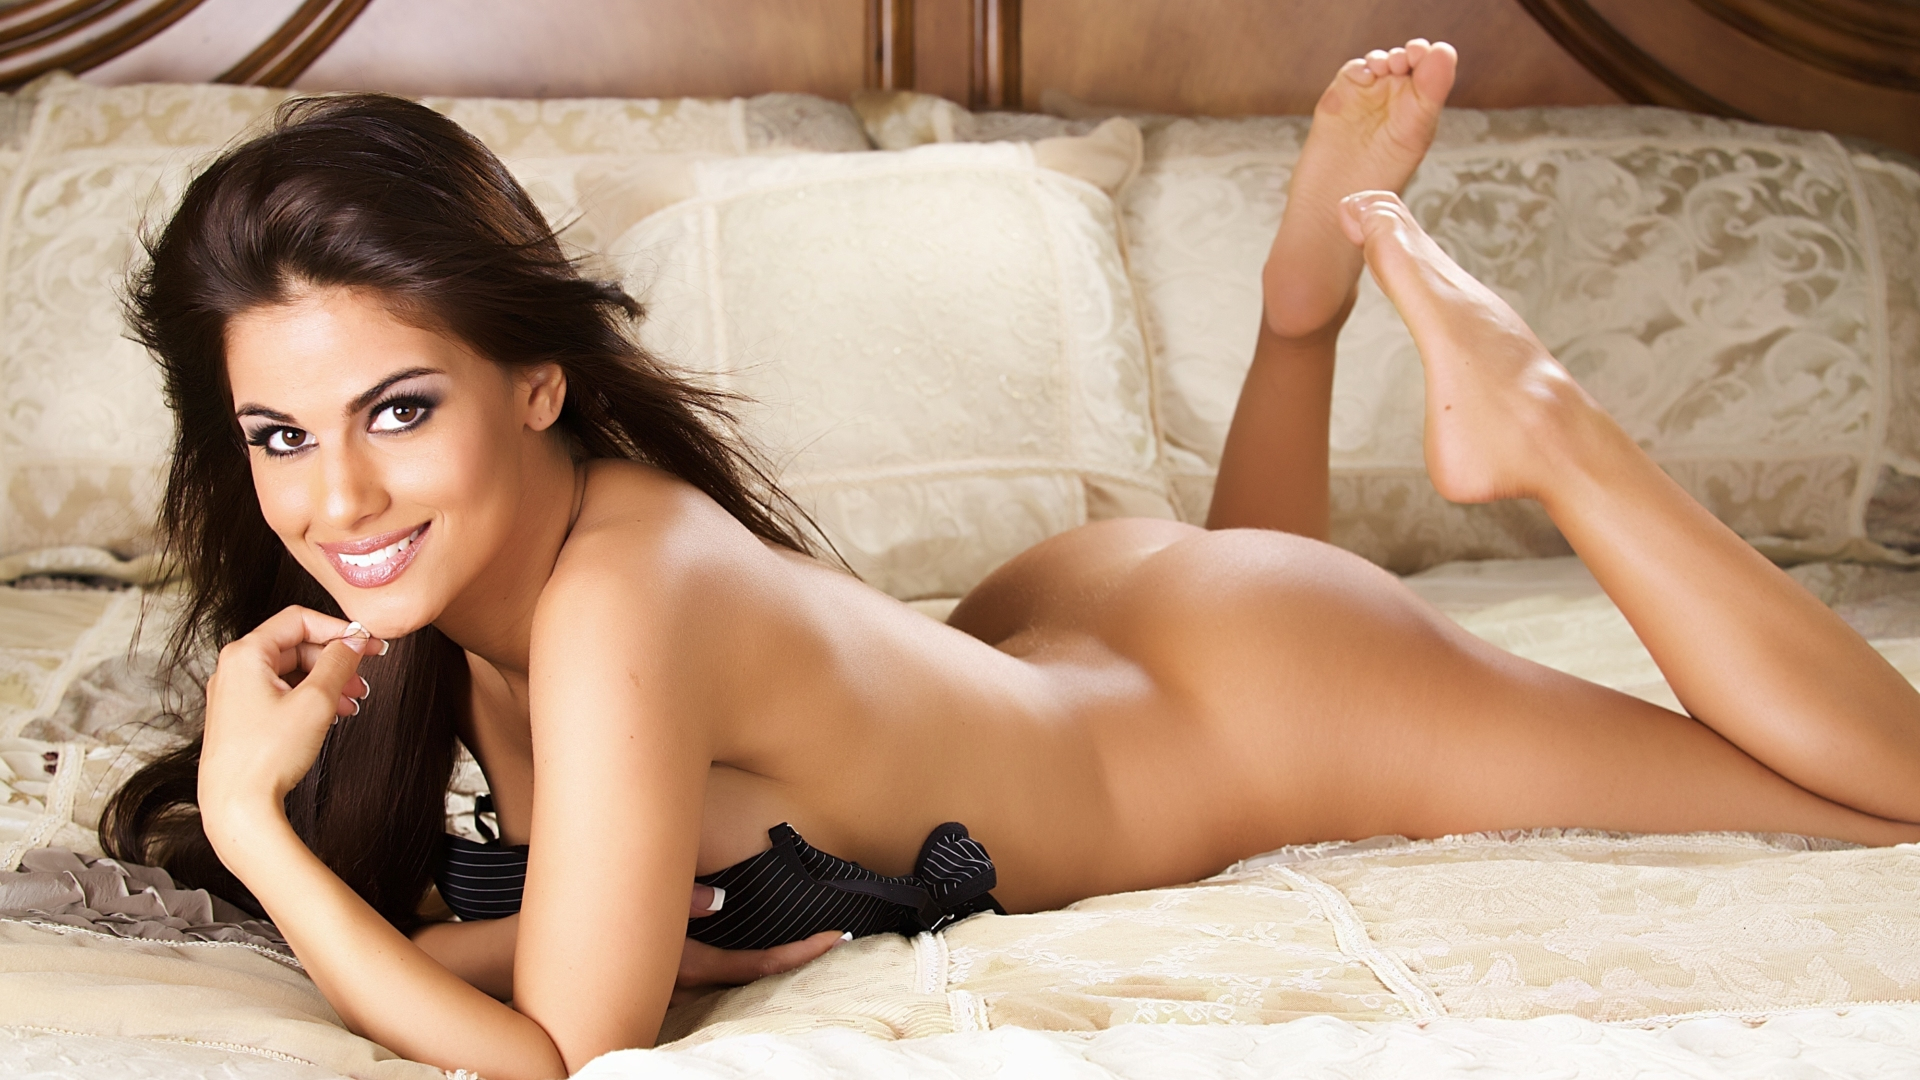 Orlando escorts are totally perfect for you